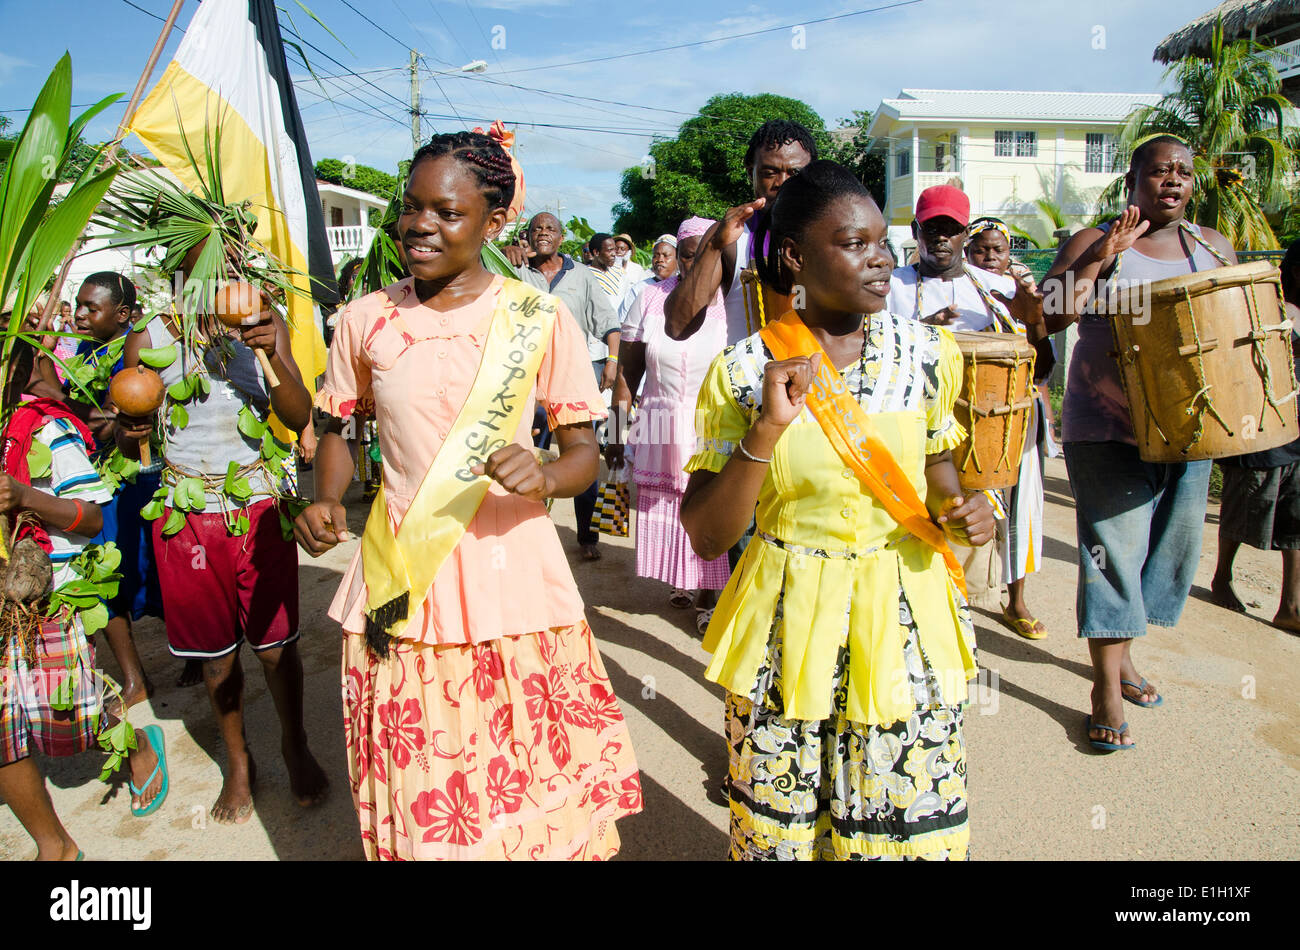 Hopkins Village, Belize, - November 19, 2013: The annual Garifuna Settlement day celebrations in full flow. - Stock Image